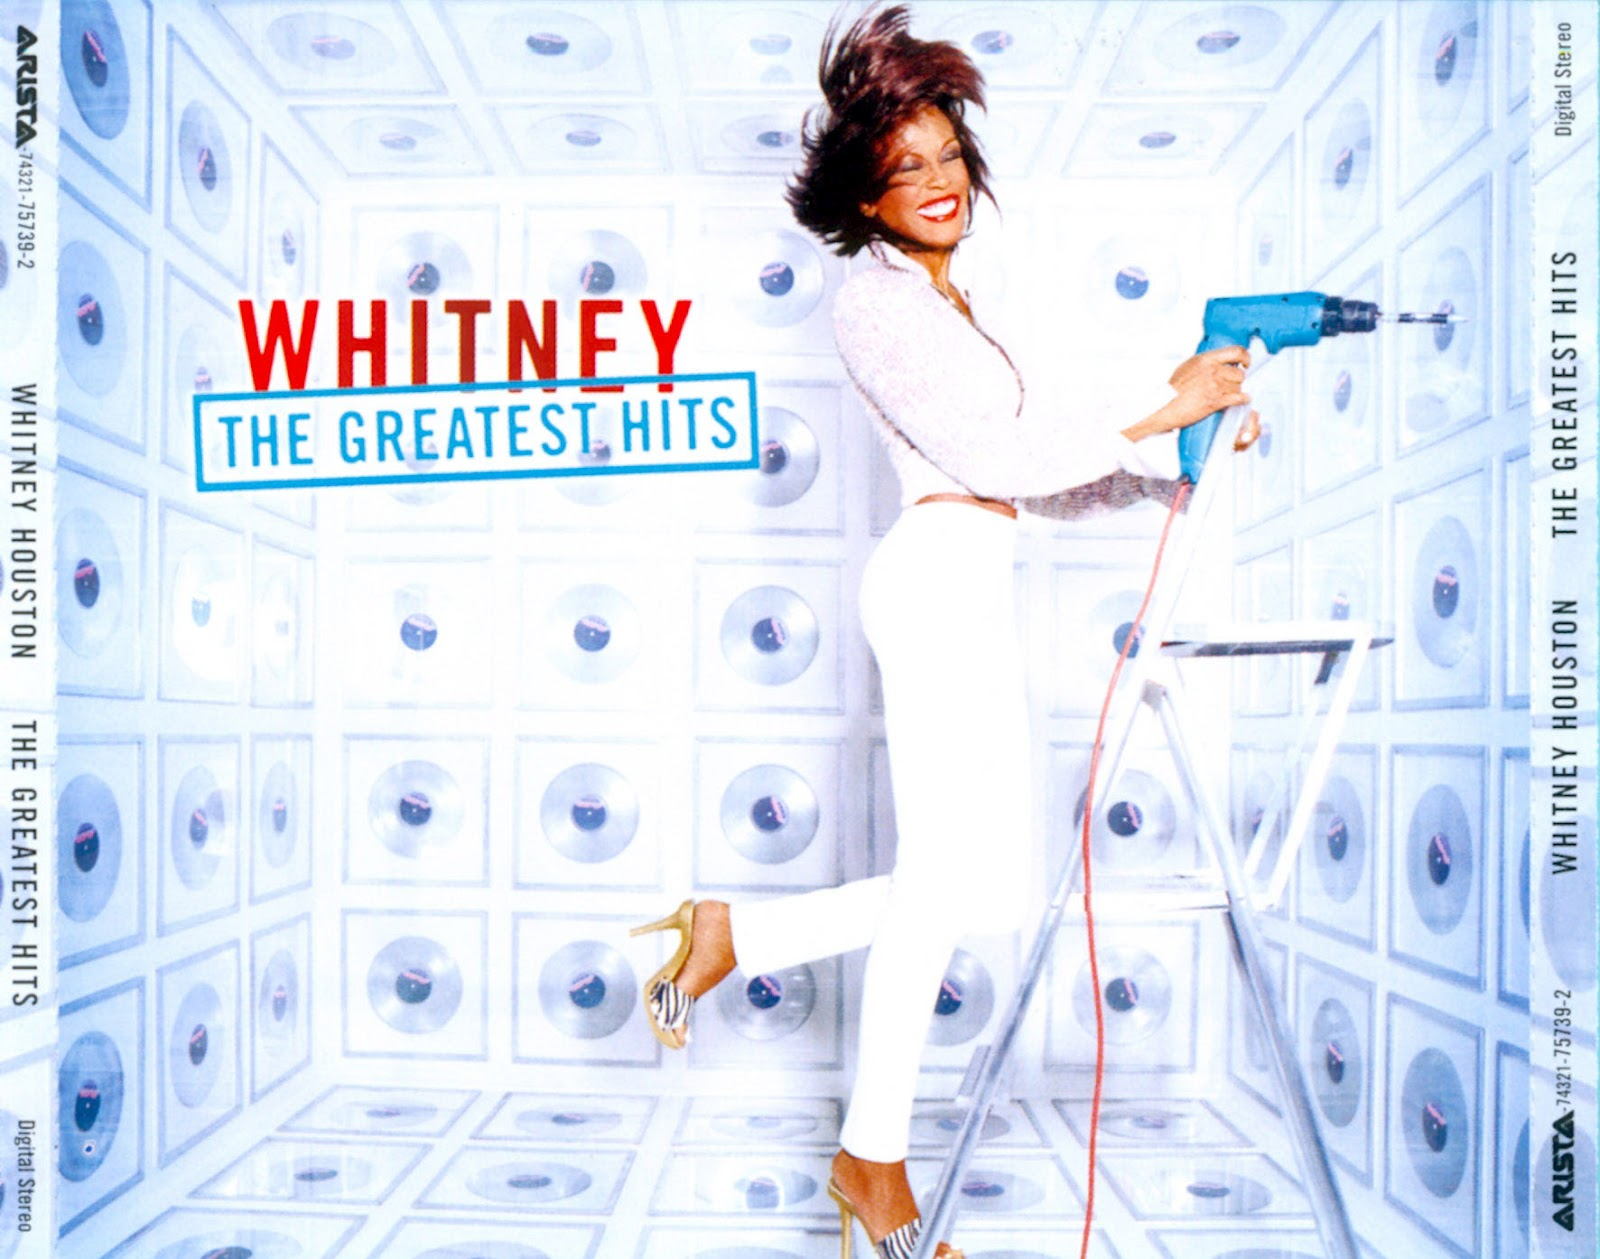 http://3.bp.blogspot.com/-IhjFleYsFEs/Tzcg4HWZAeI/AAAAAAAABPY/fBkZOakRVuc/s1600/Whitney_Houston-The_Greatest_Hits-Frontal.jpg